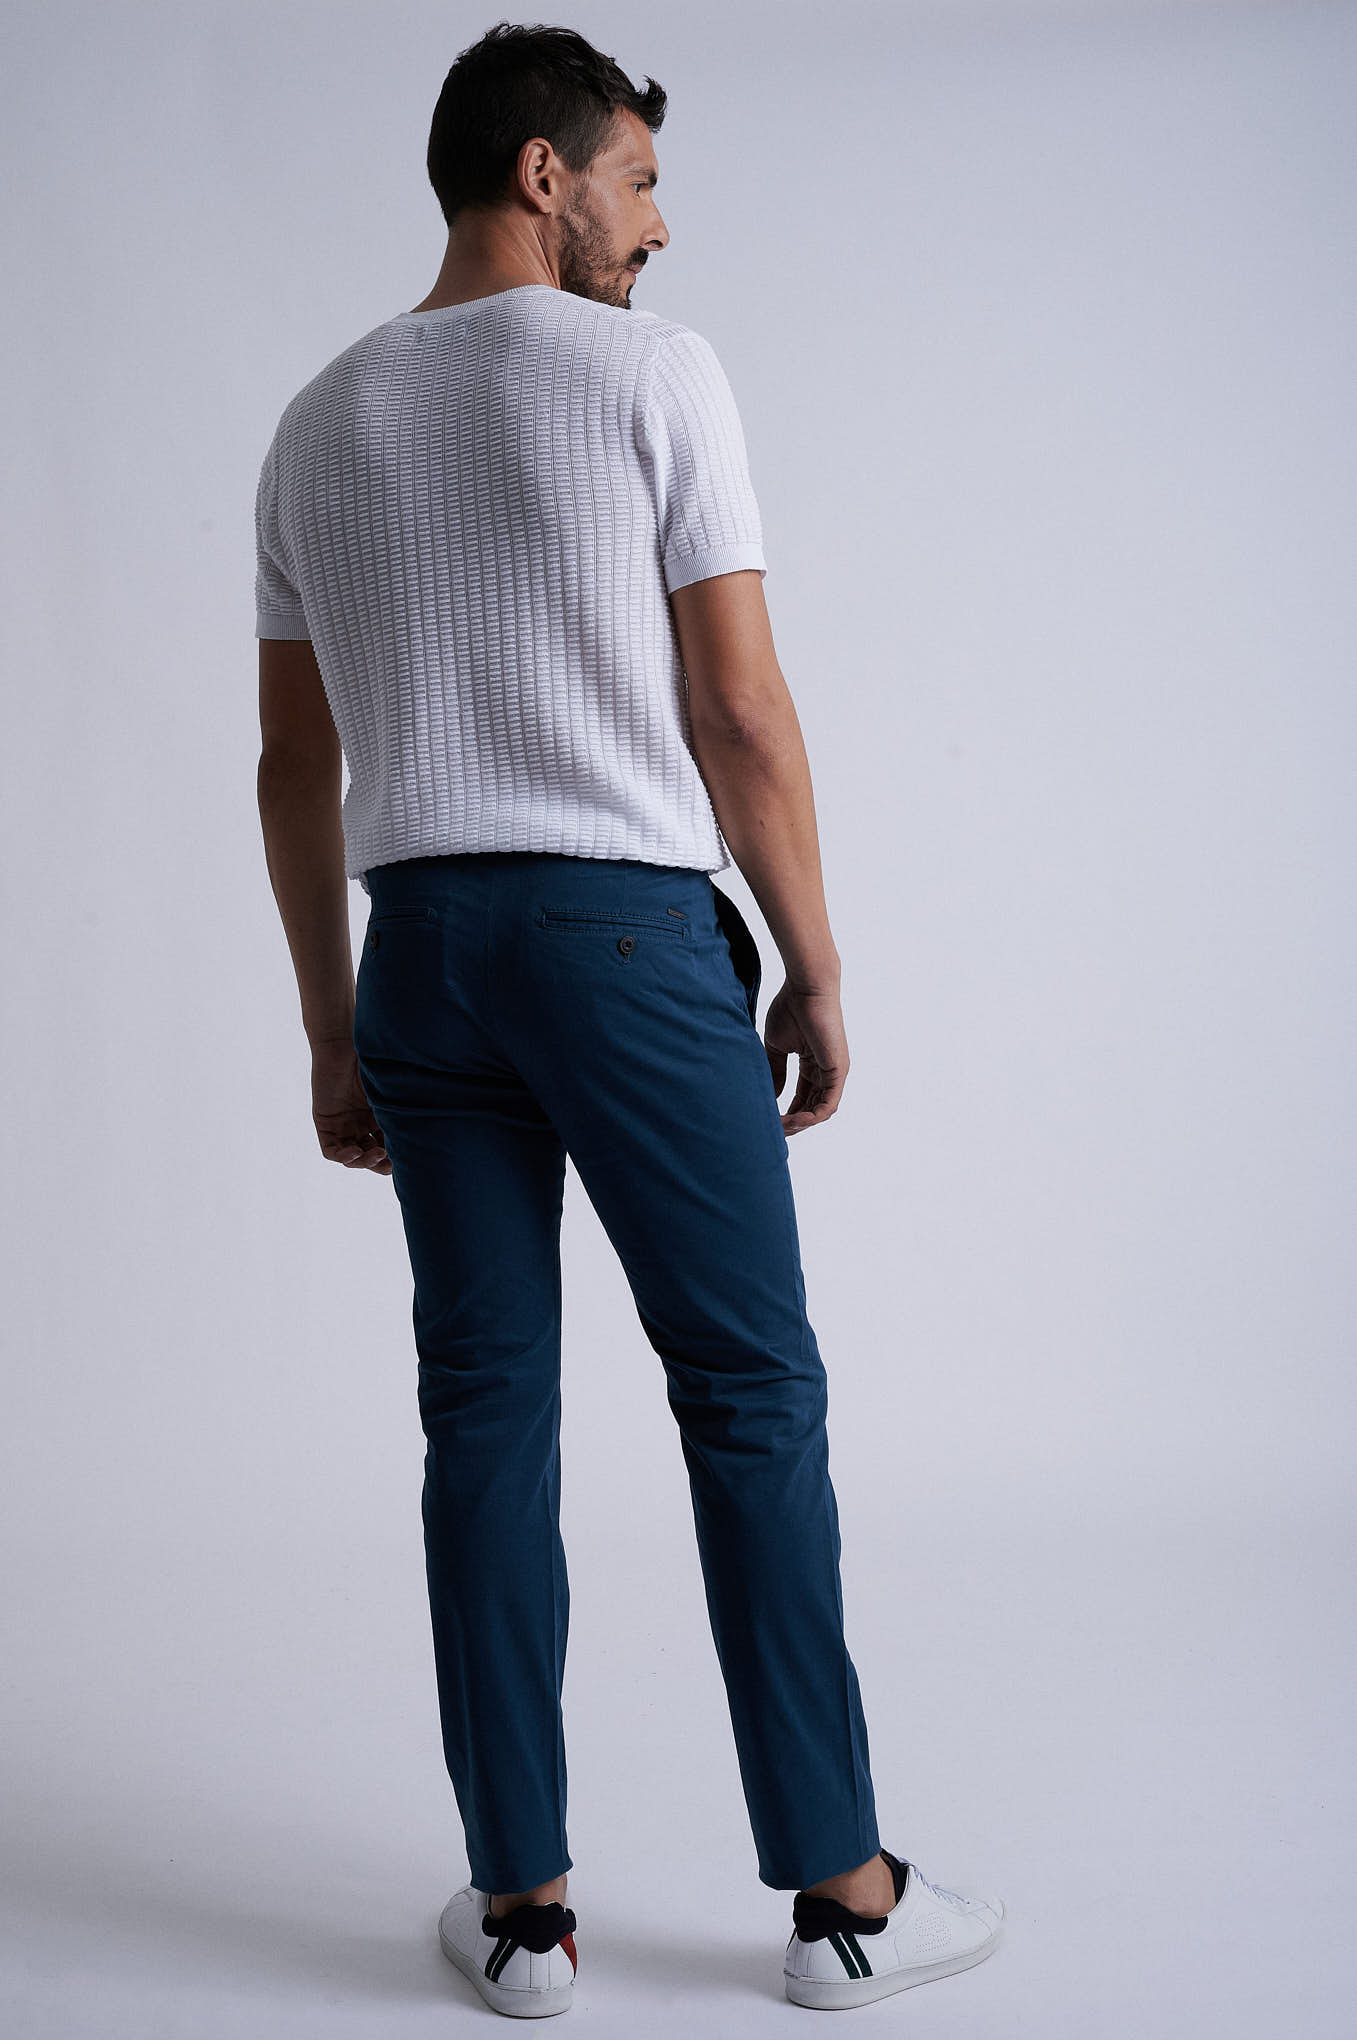 Chino Trousers Teal Sport Man